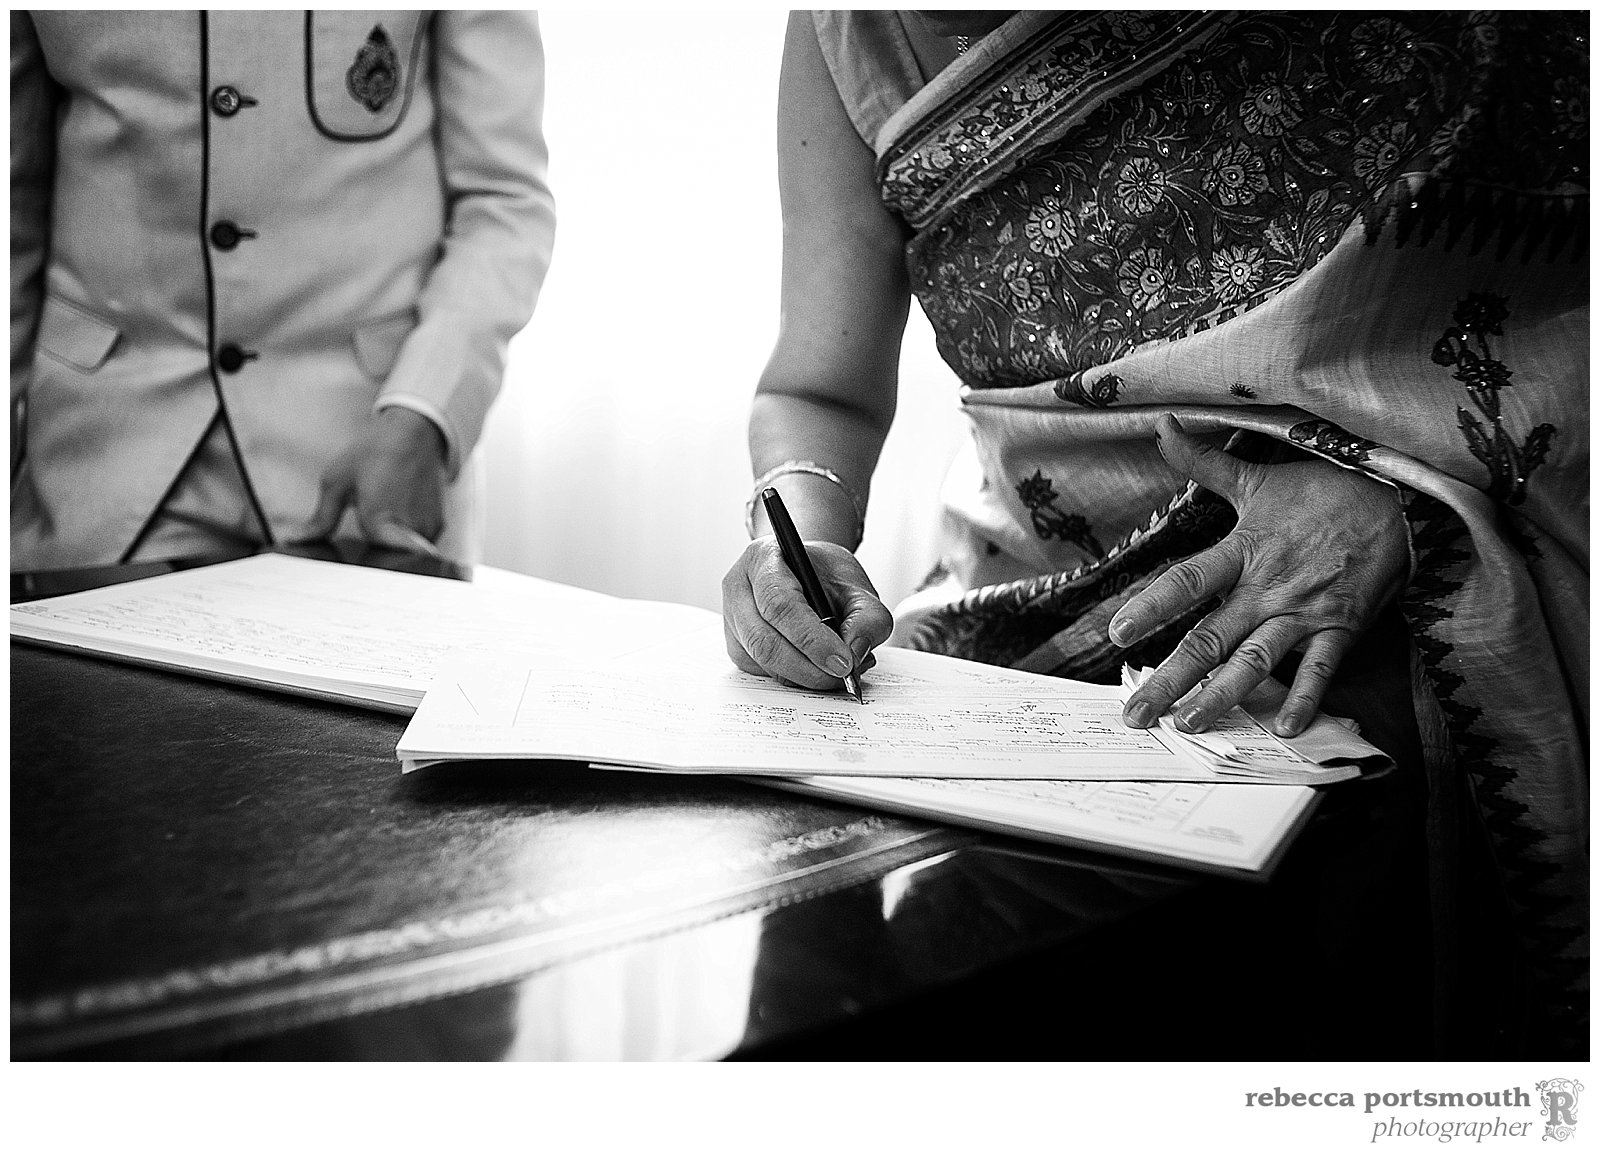 The groom's mother signs the wedding registry at Chelsea Old Town Hall's Brydon Room after the civiil marriage of Pooja and Ankit.